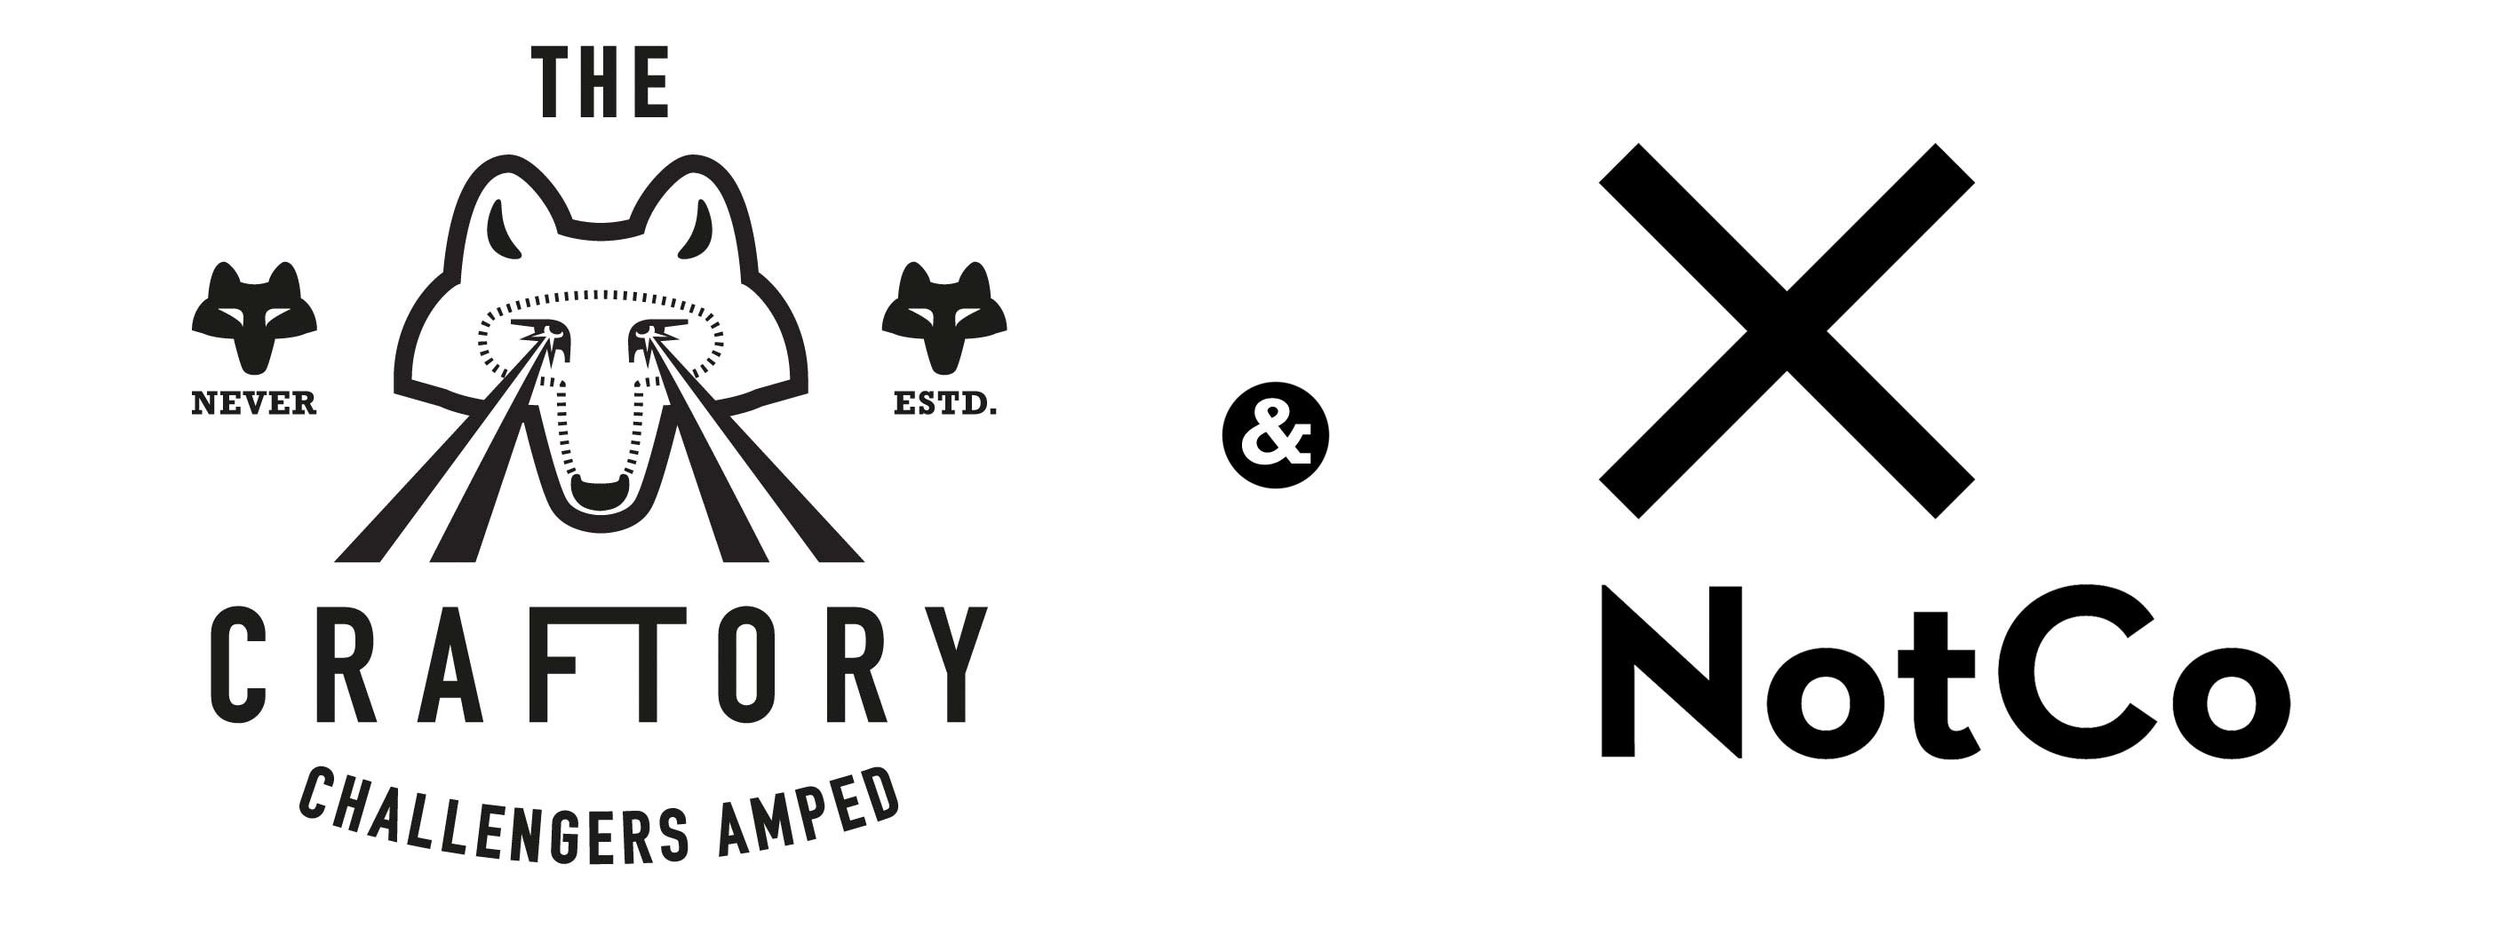 the-craftory-notco-logos2.jpg